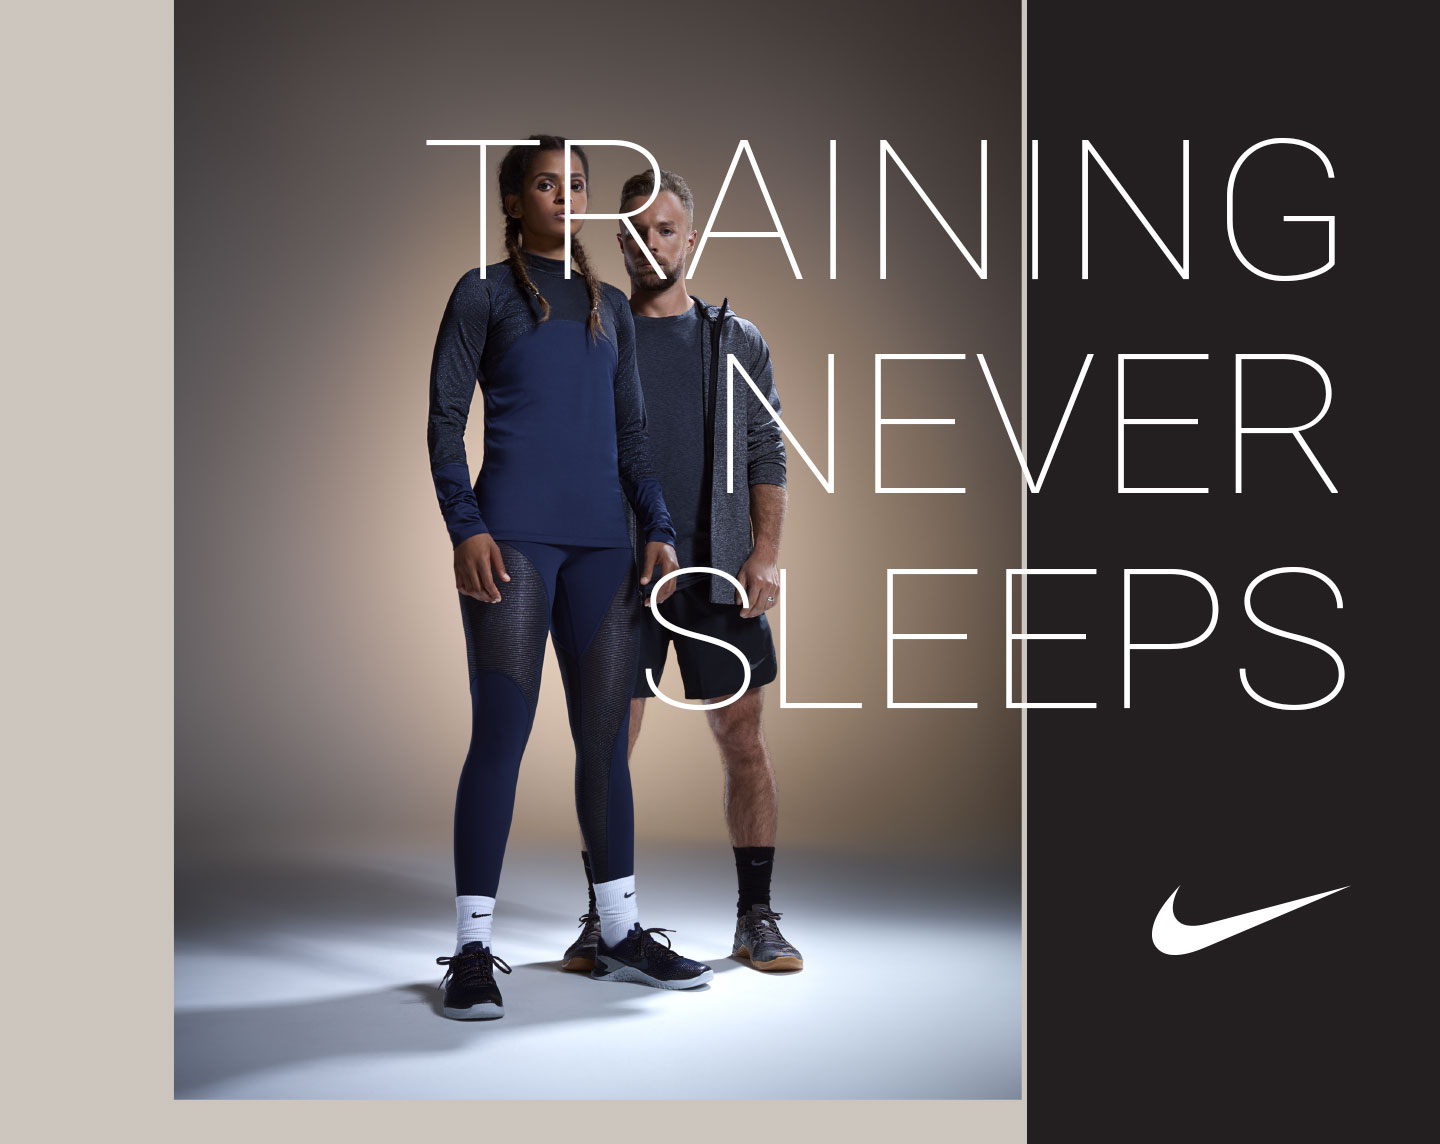 Training never sleeps